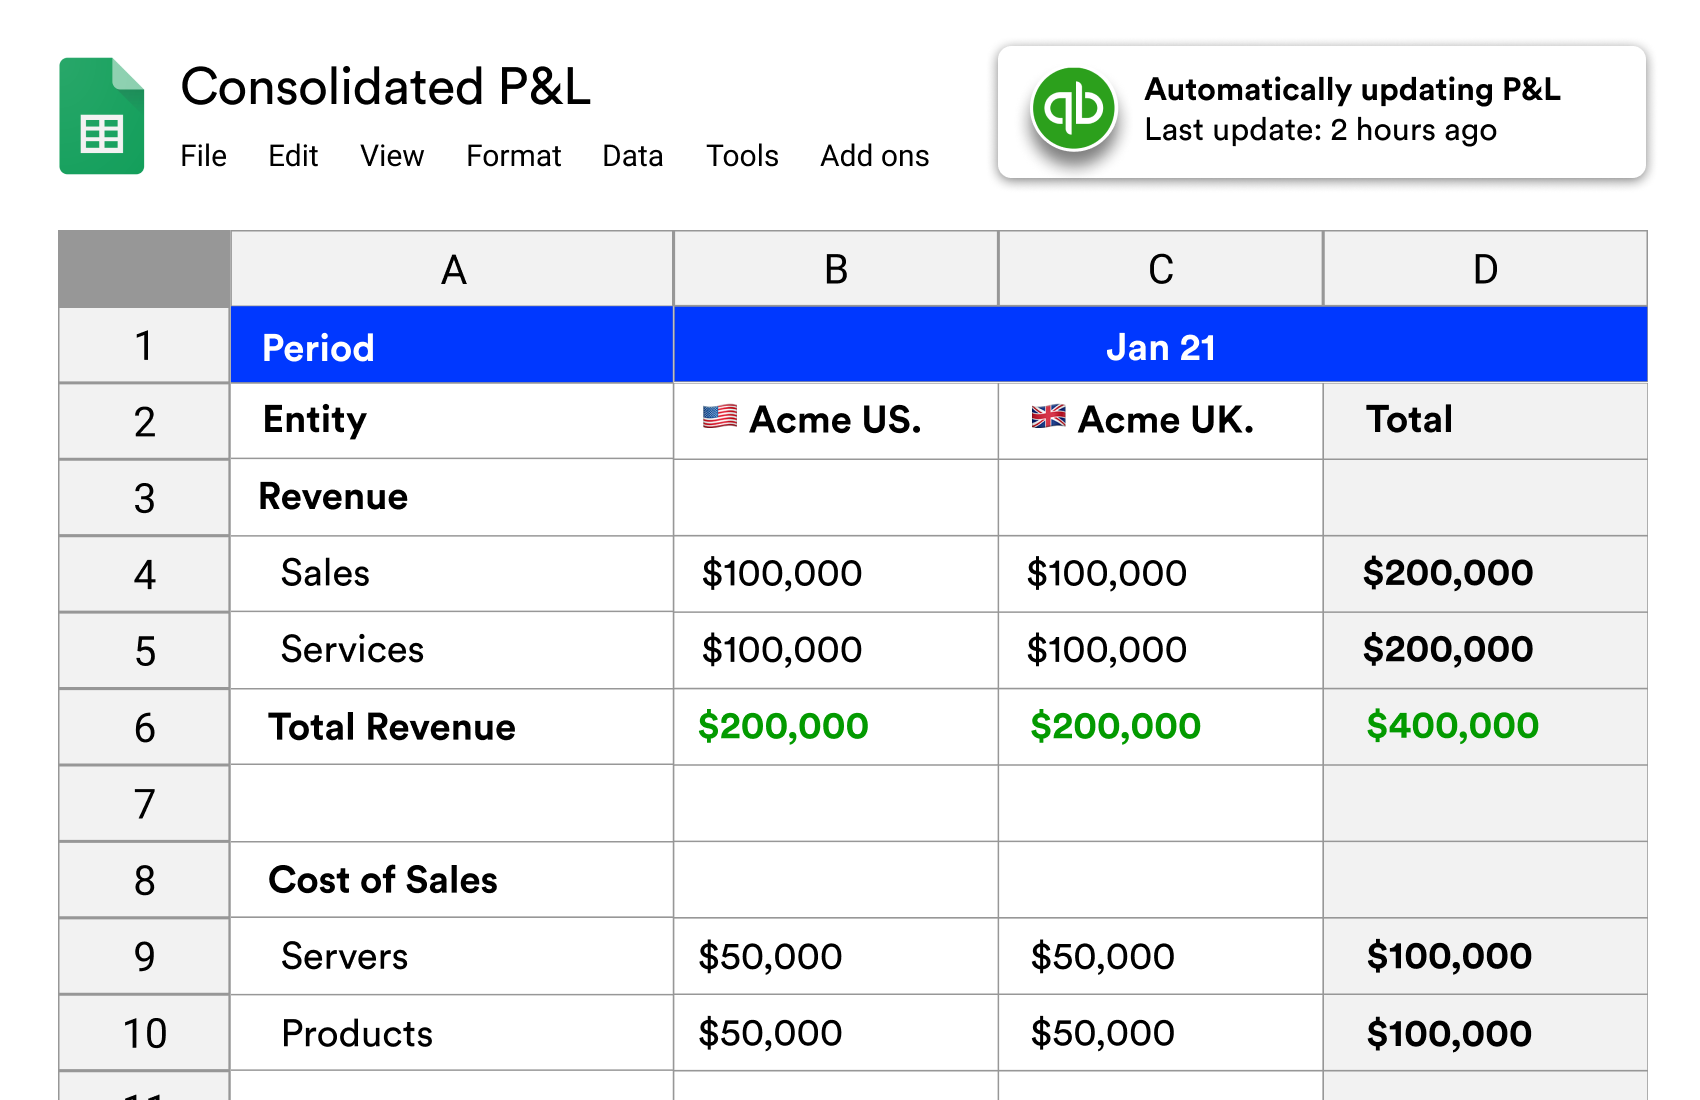 Consolidated P&L